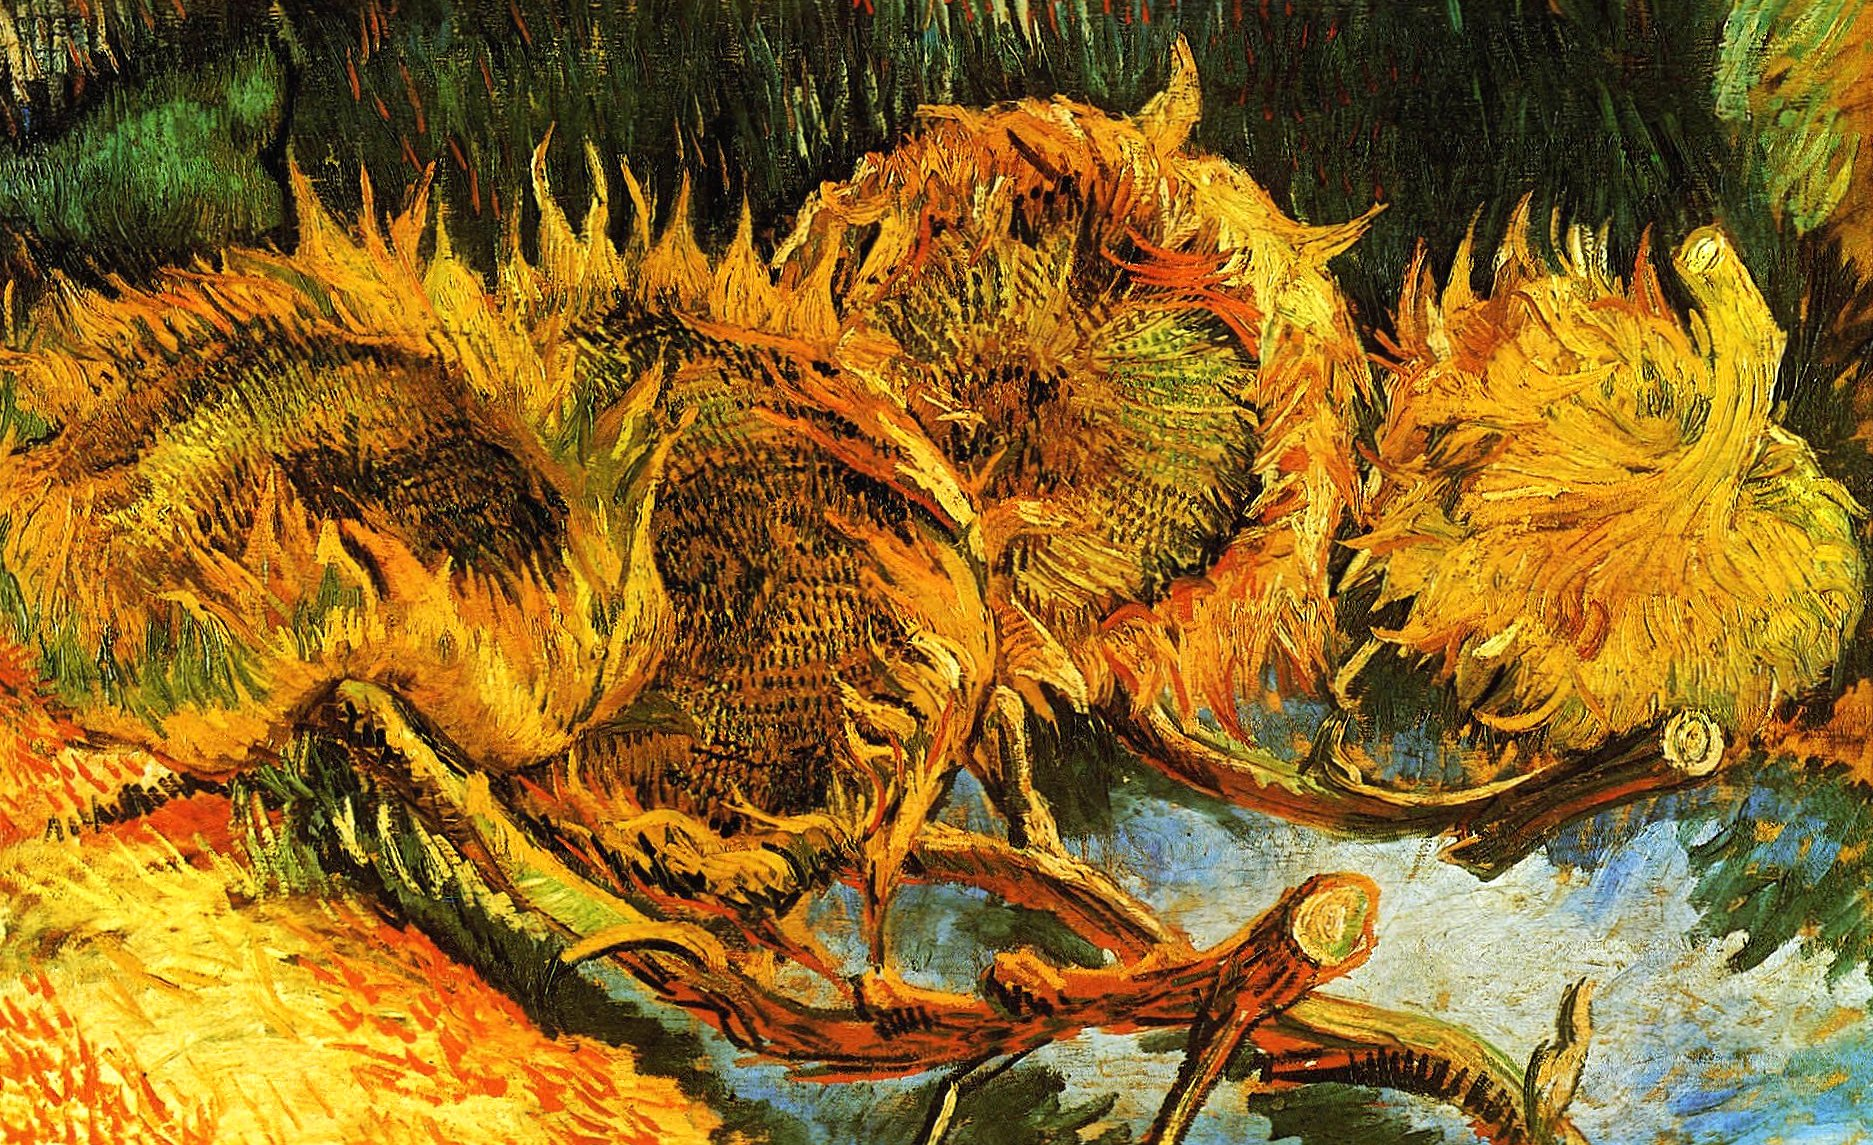 Vincent van gogh still life sunflowers wallpapers HD quality